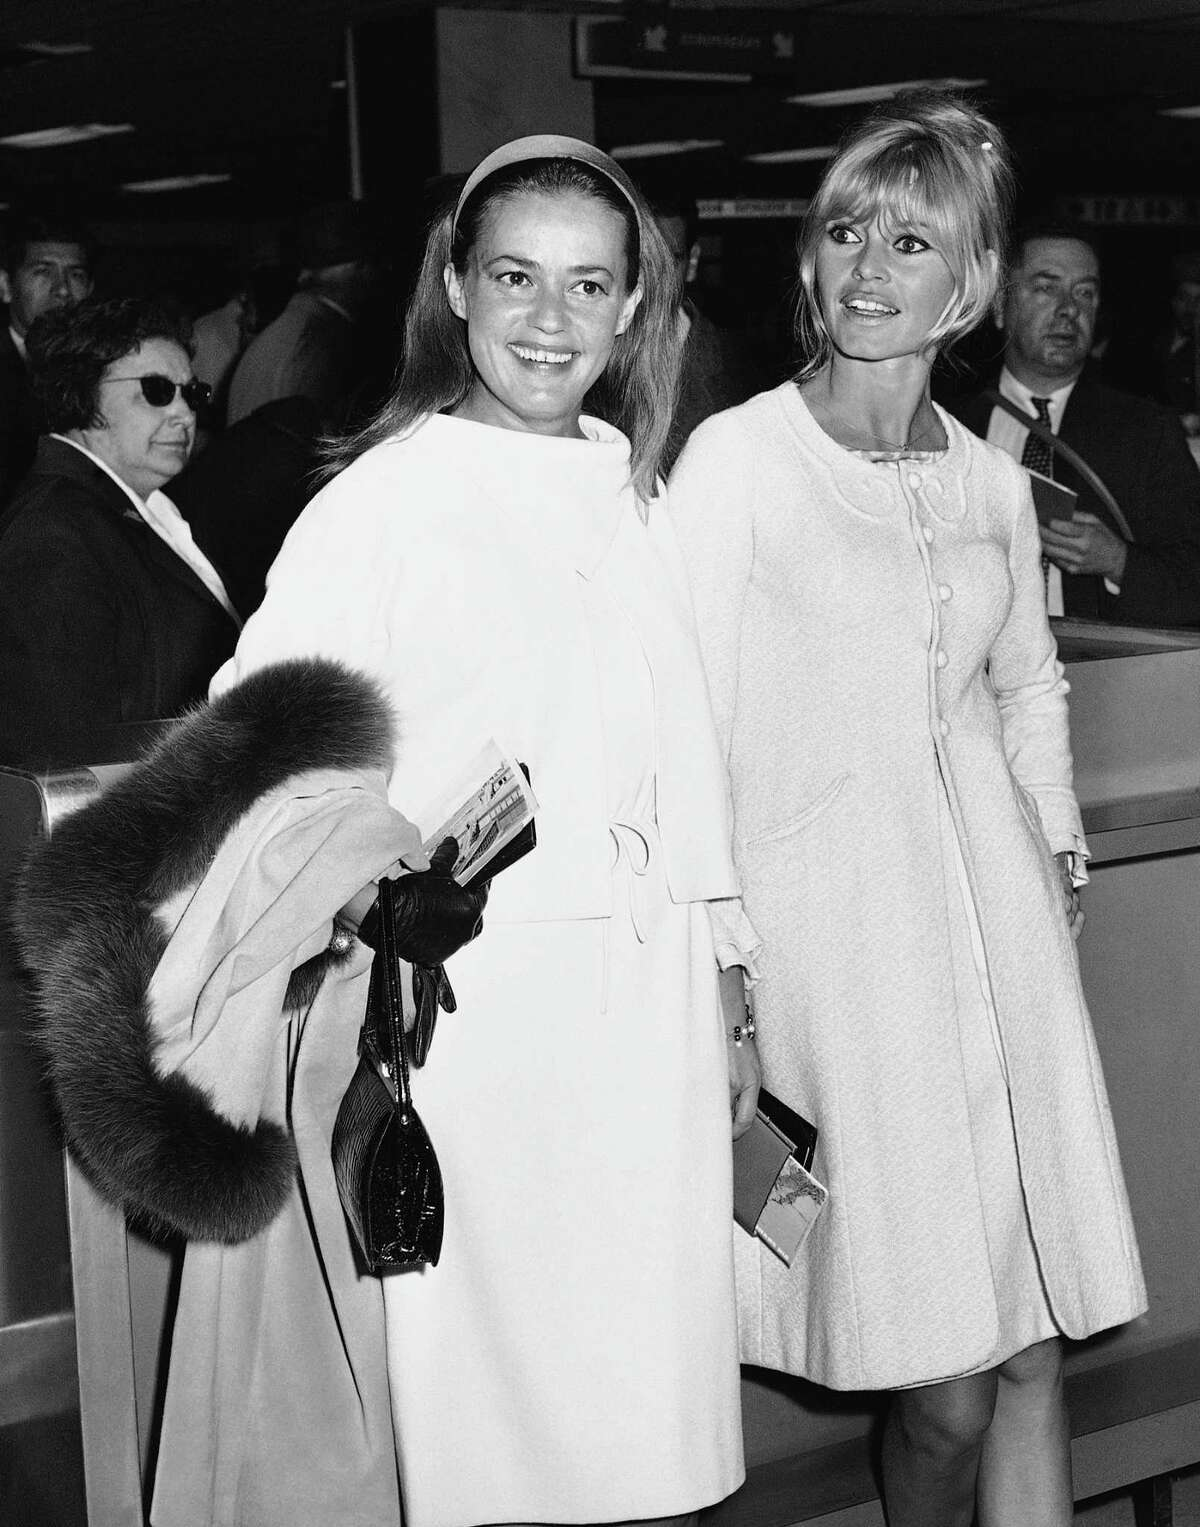 FILE - In this May 26, 1965 file photo Jeanne Moreau, left, and Brigitte Bardot are photographed as they arrive at Orly airport in Paris. French actress Jeanne Moreau, whose seven-decade career included work with Francois Truffaut, Orson Welles, Wim Wenders and other acclaimed directors, has died aged 89 it was announced Monday July 31, 2017. (AP Photo/File) ORG XMIT: TH105